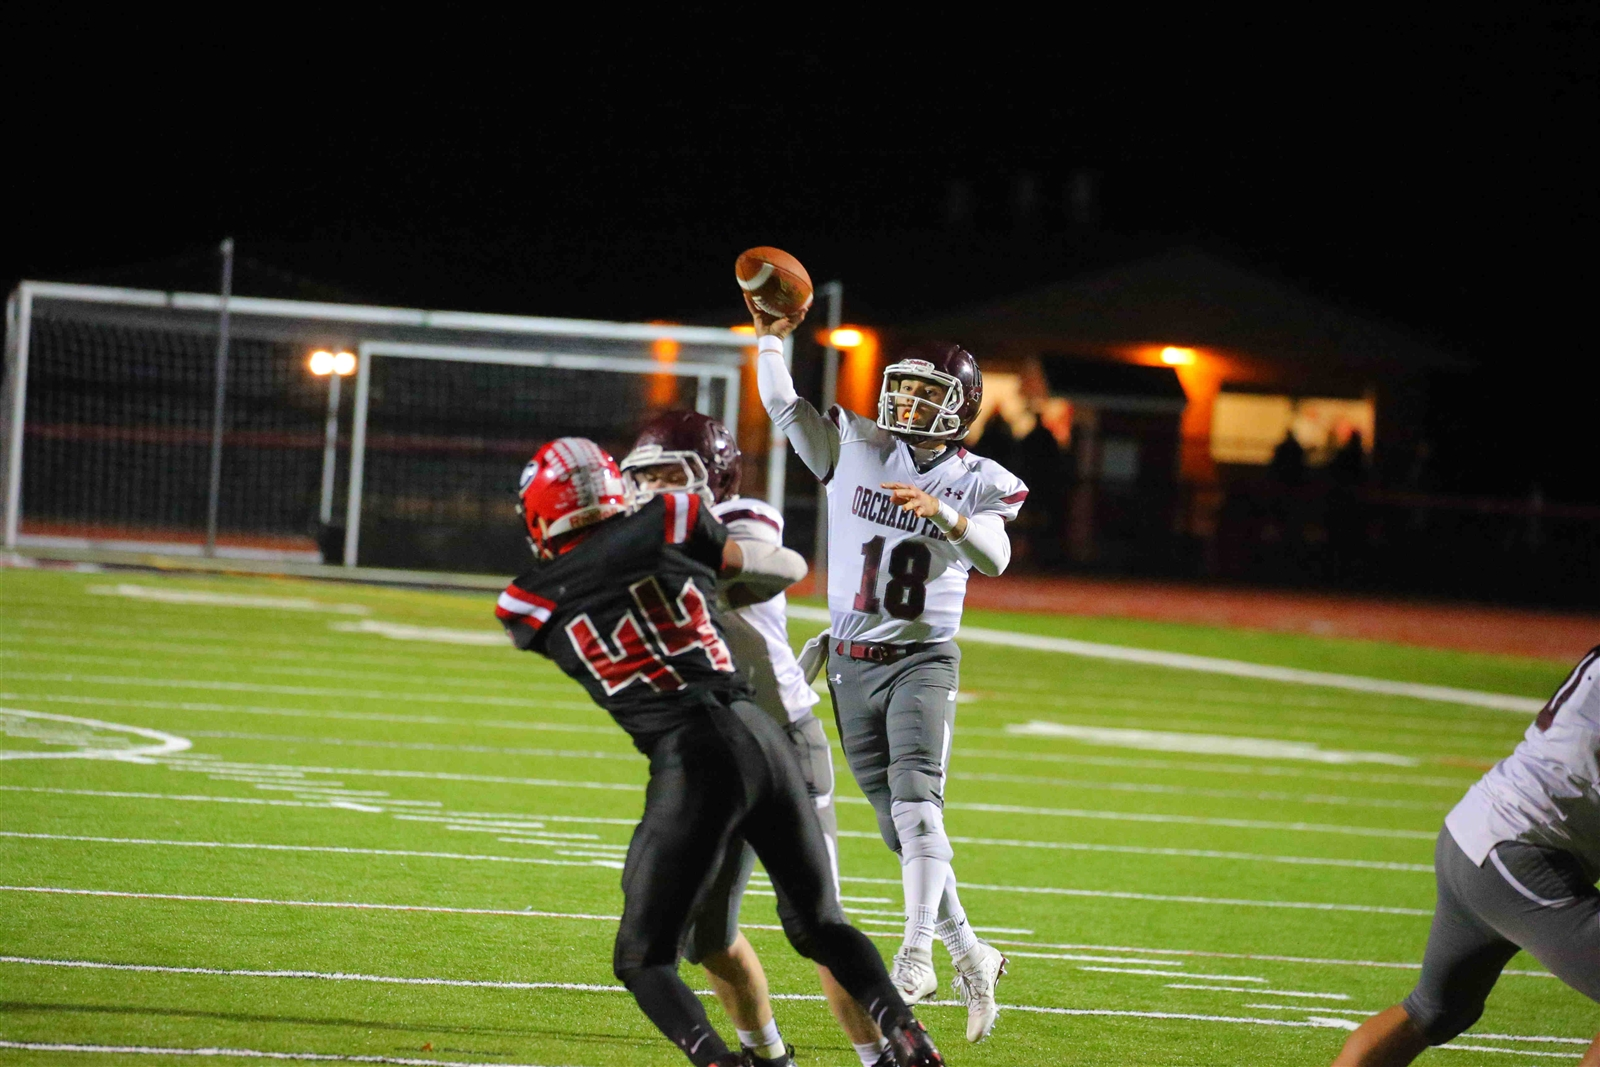 With Orchard Park's semifinal win at Clarence, Dillon Janca and the Quakers set up a rematch with Lancaster for the Class AA title next week at New Era Field. (John Hickey/Buffalo News)